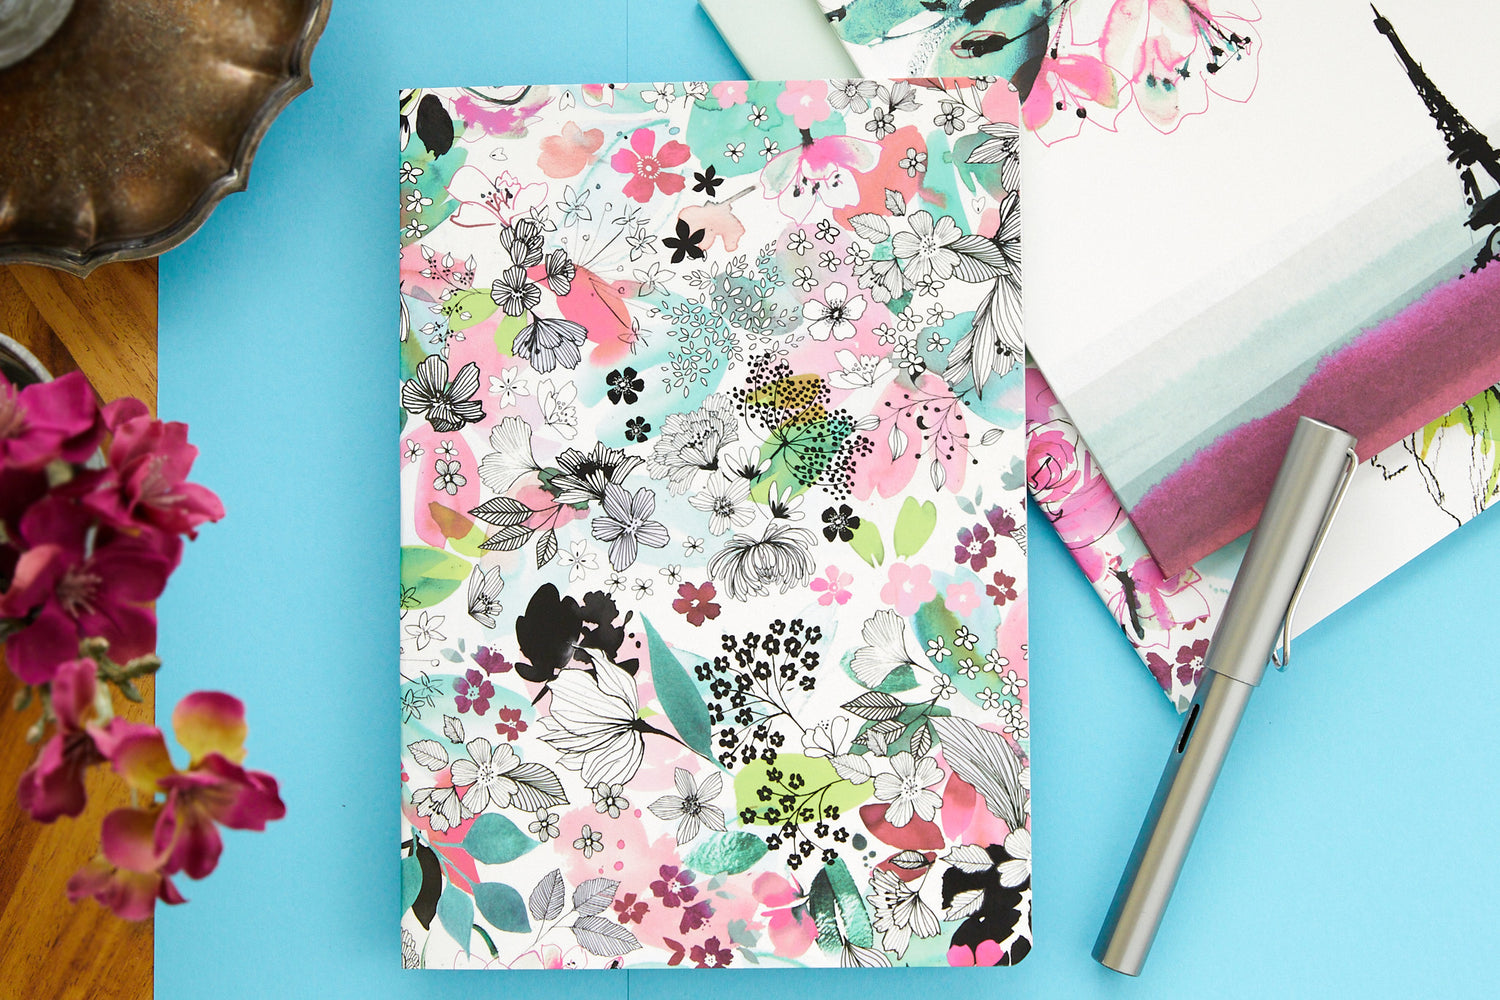 Clairefontaine Blooming Staplebound A5 Notebook - Lined